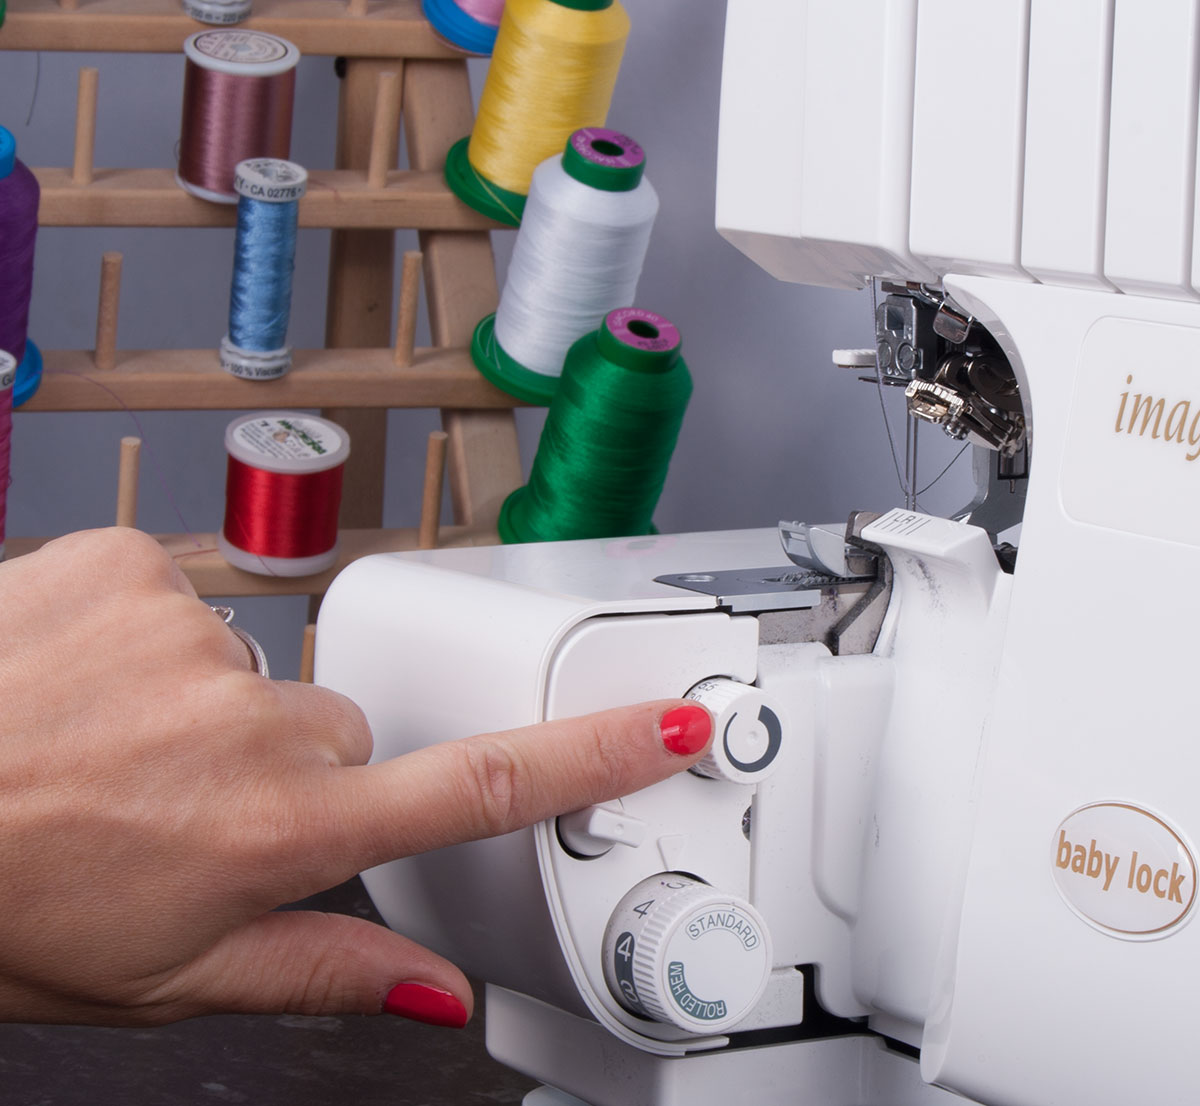 How to choose an overlock